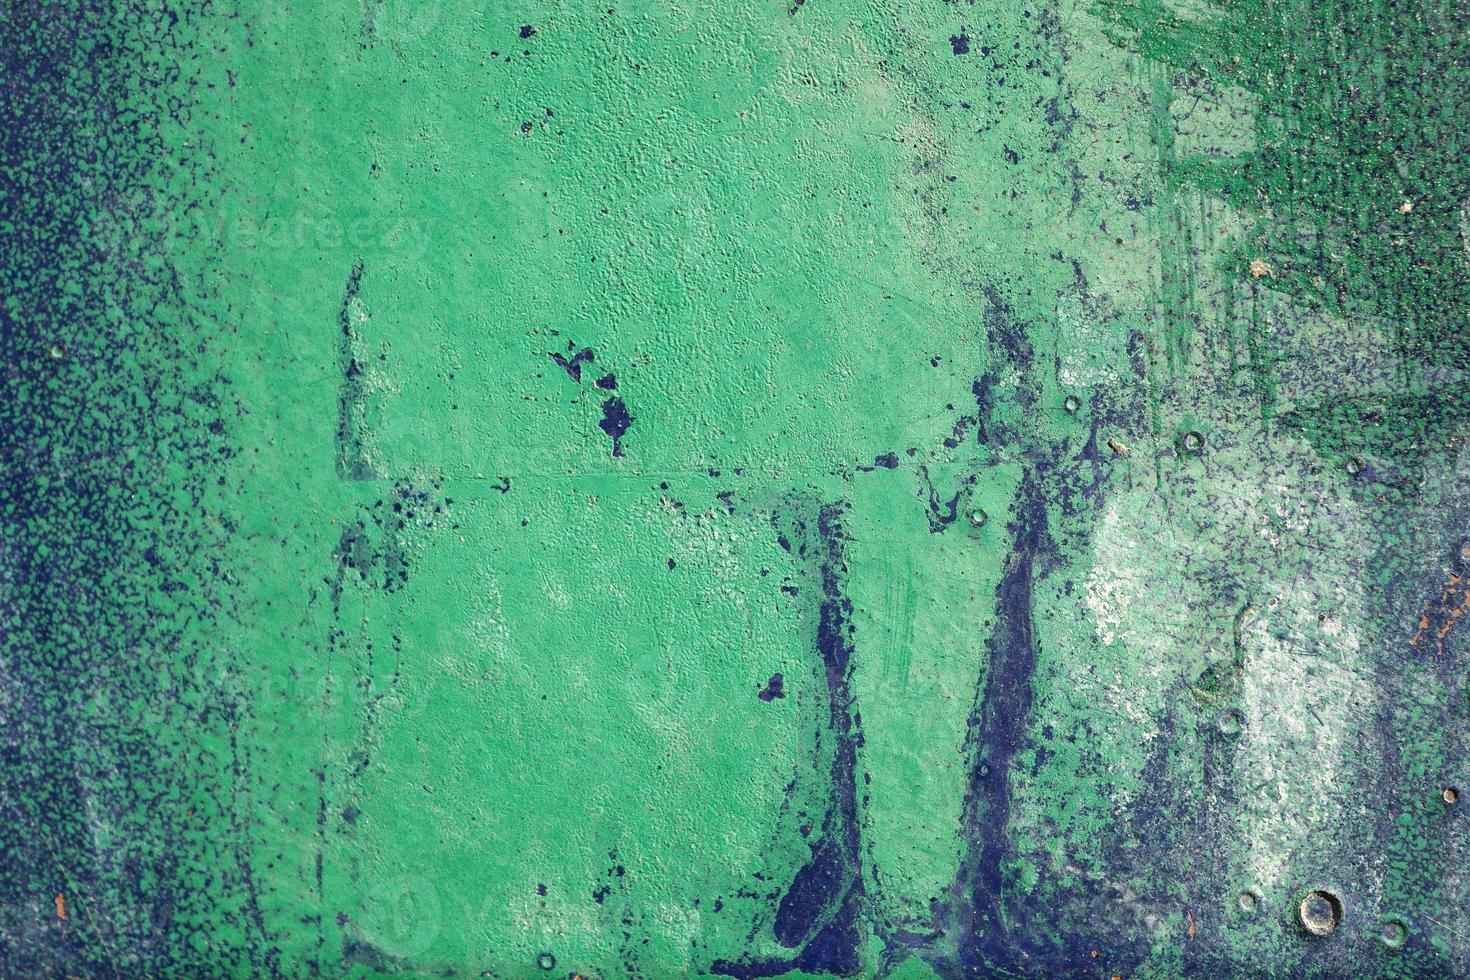 Hoarse,scratched and peeled surface with green and blue paint photo